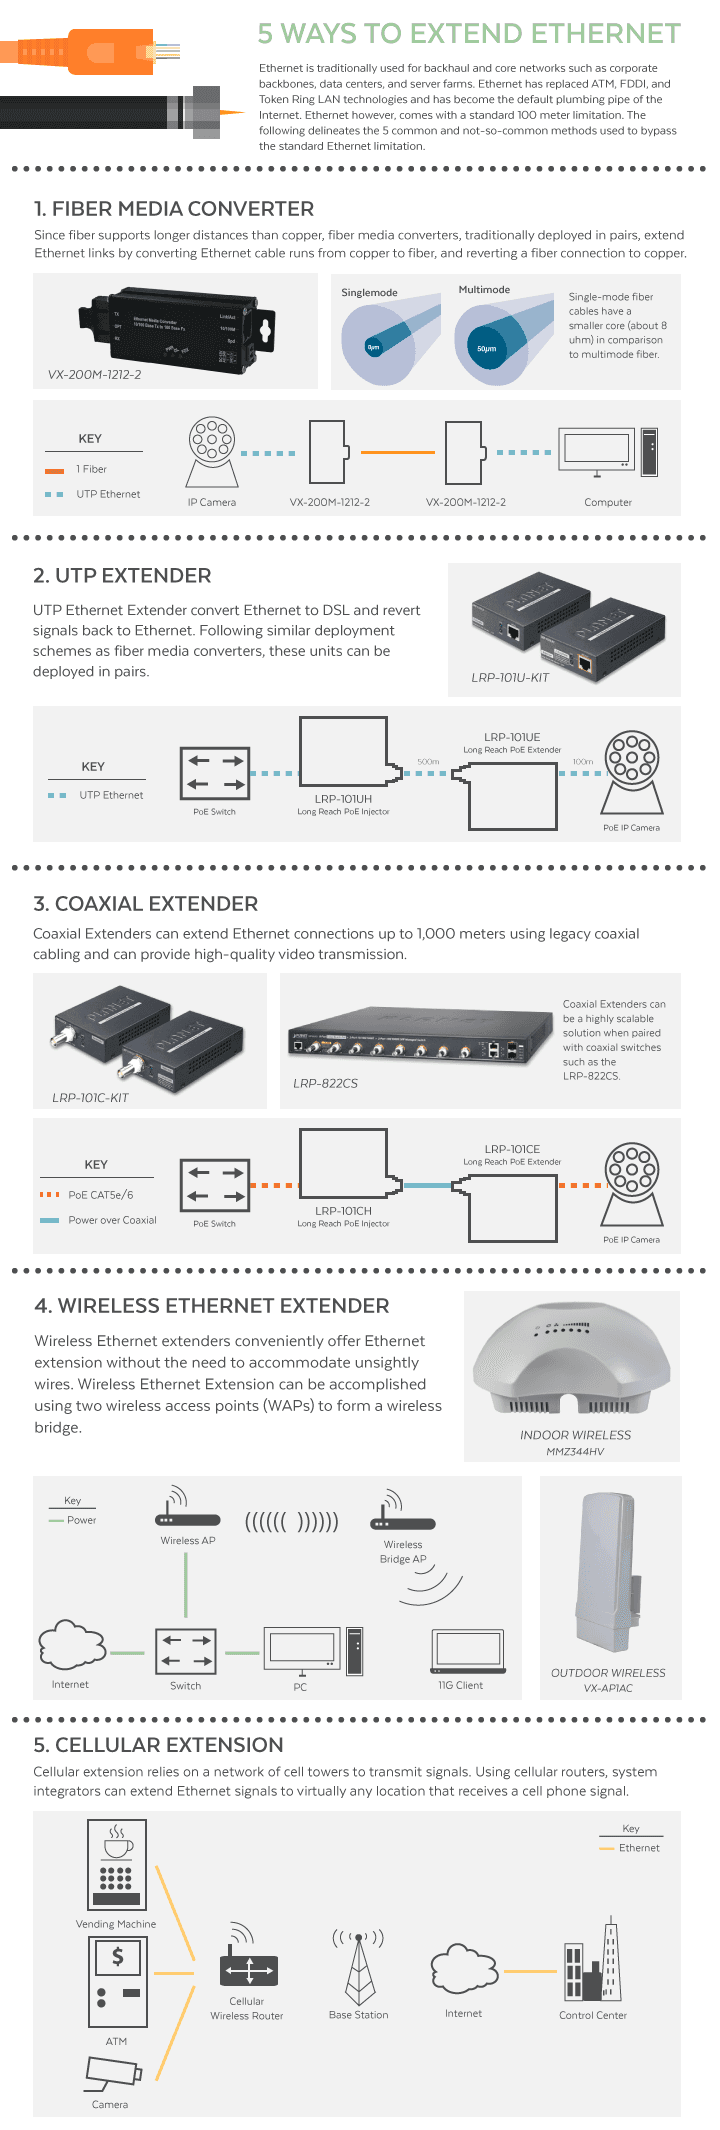 Top 5 Ways to Extend Ethernet (with Infographic) | Versa